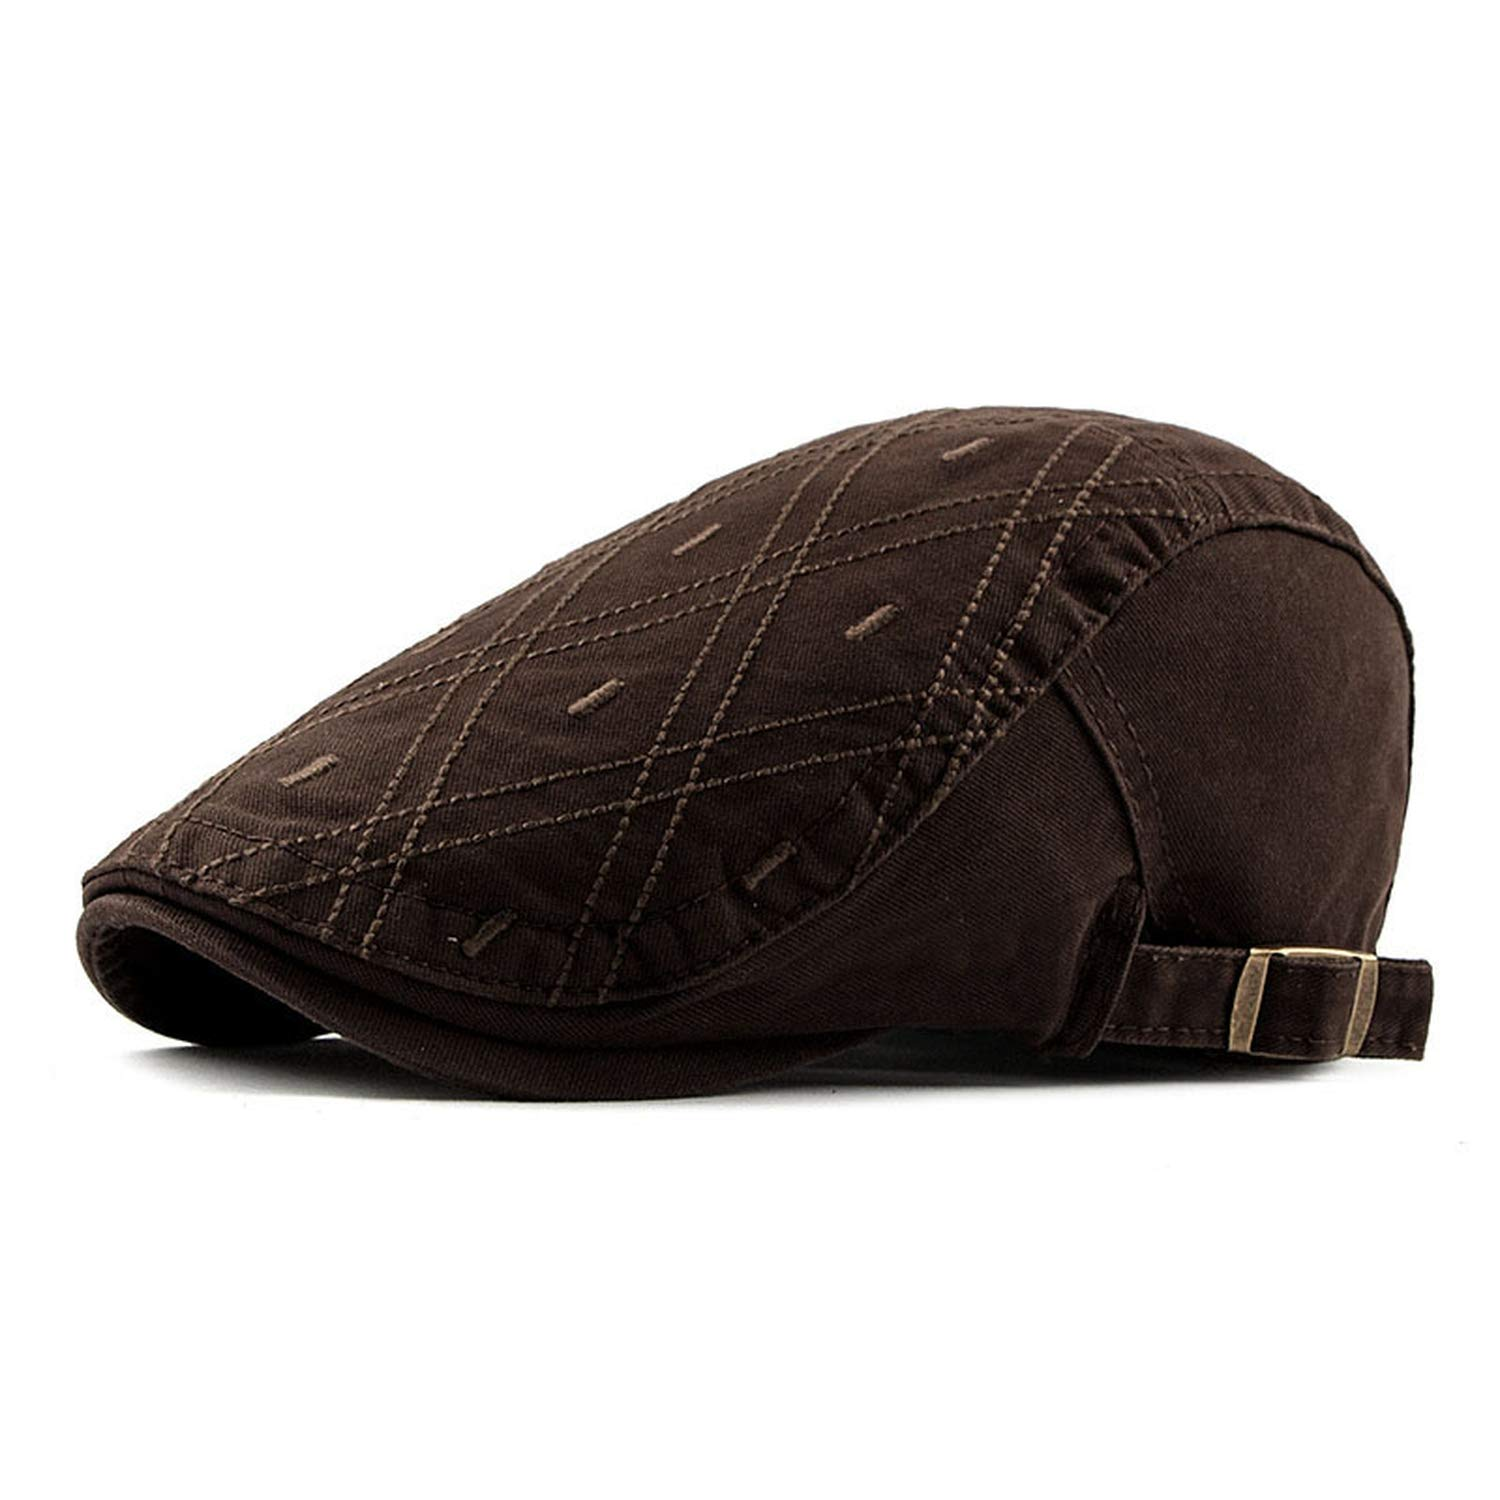 2019 New Men Womens Berets French Style Plaid Cabbie Flatcap Spring Summer Newsboy Caps